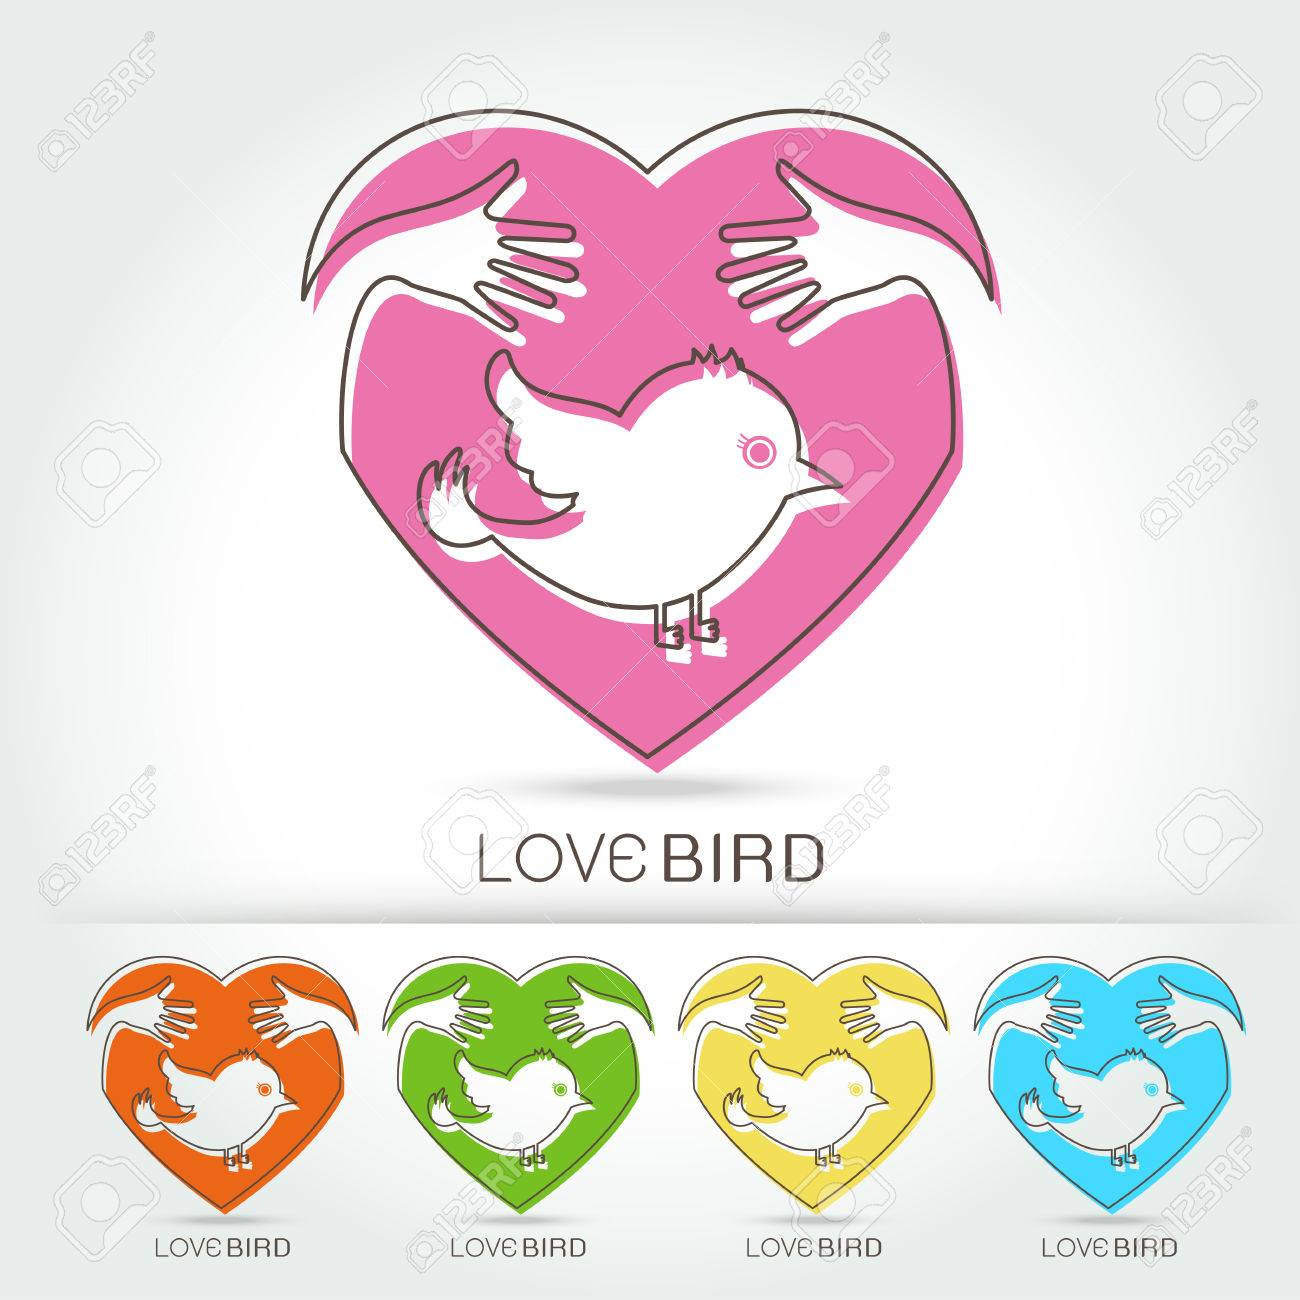 Preserve Bird With Hug In Heart Symbol Illustration Royalty Free